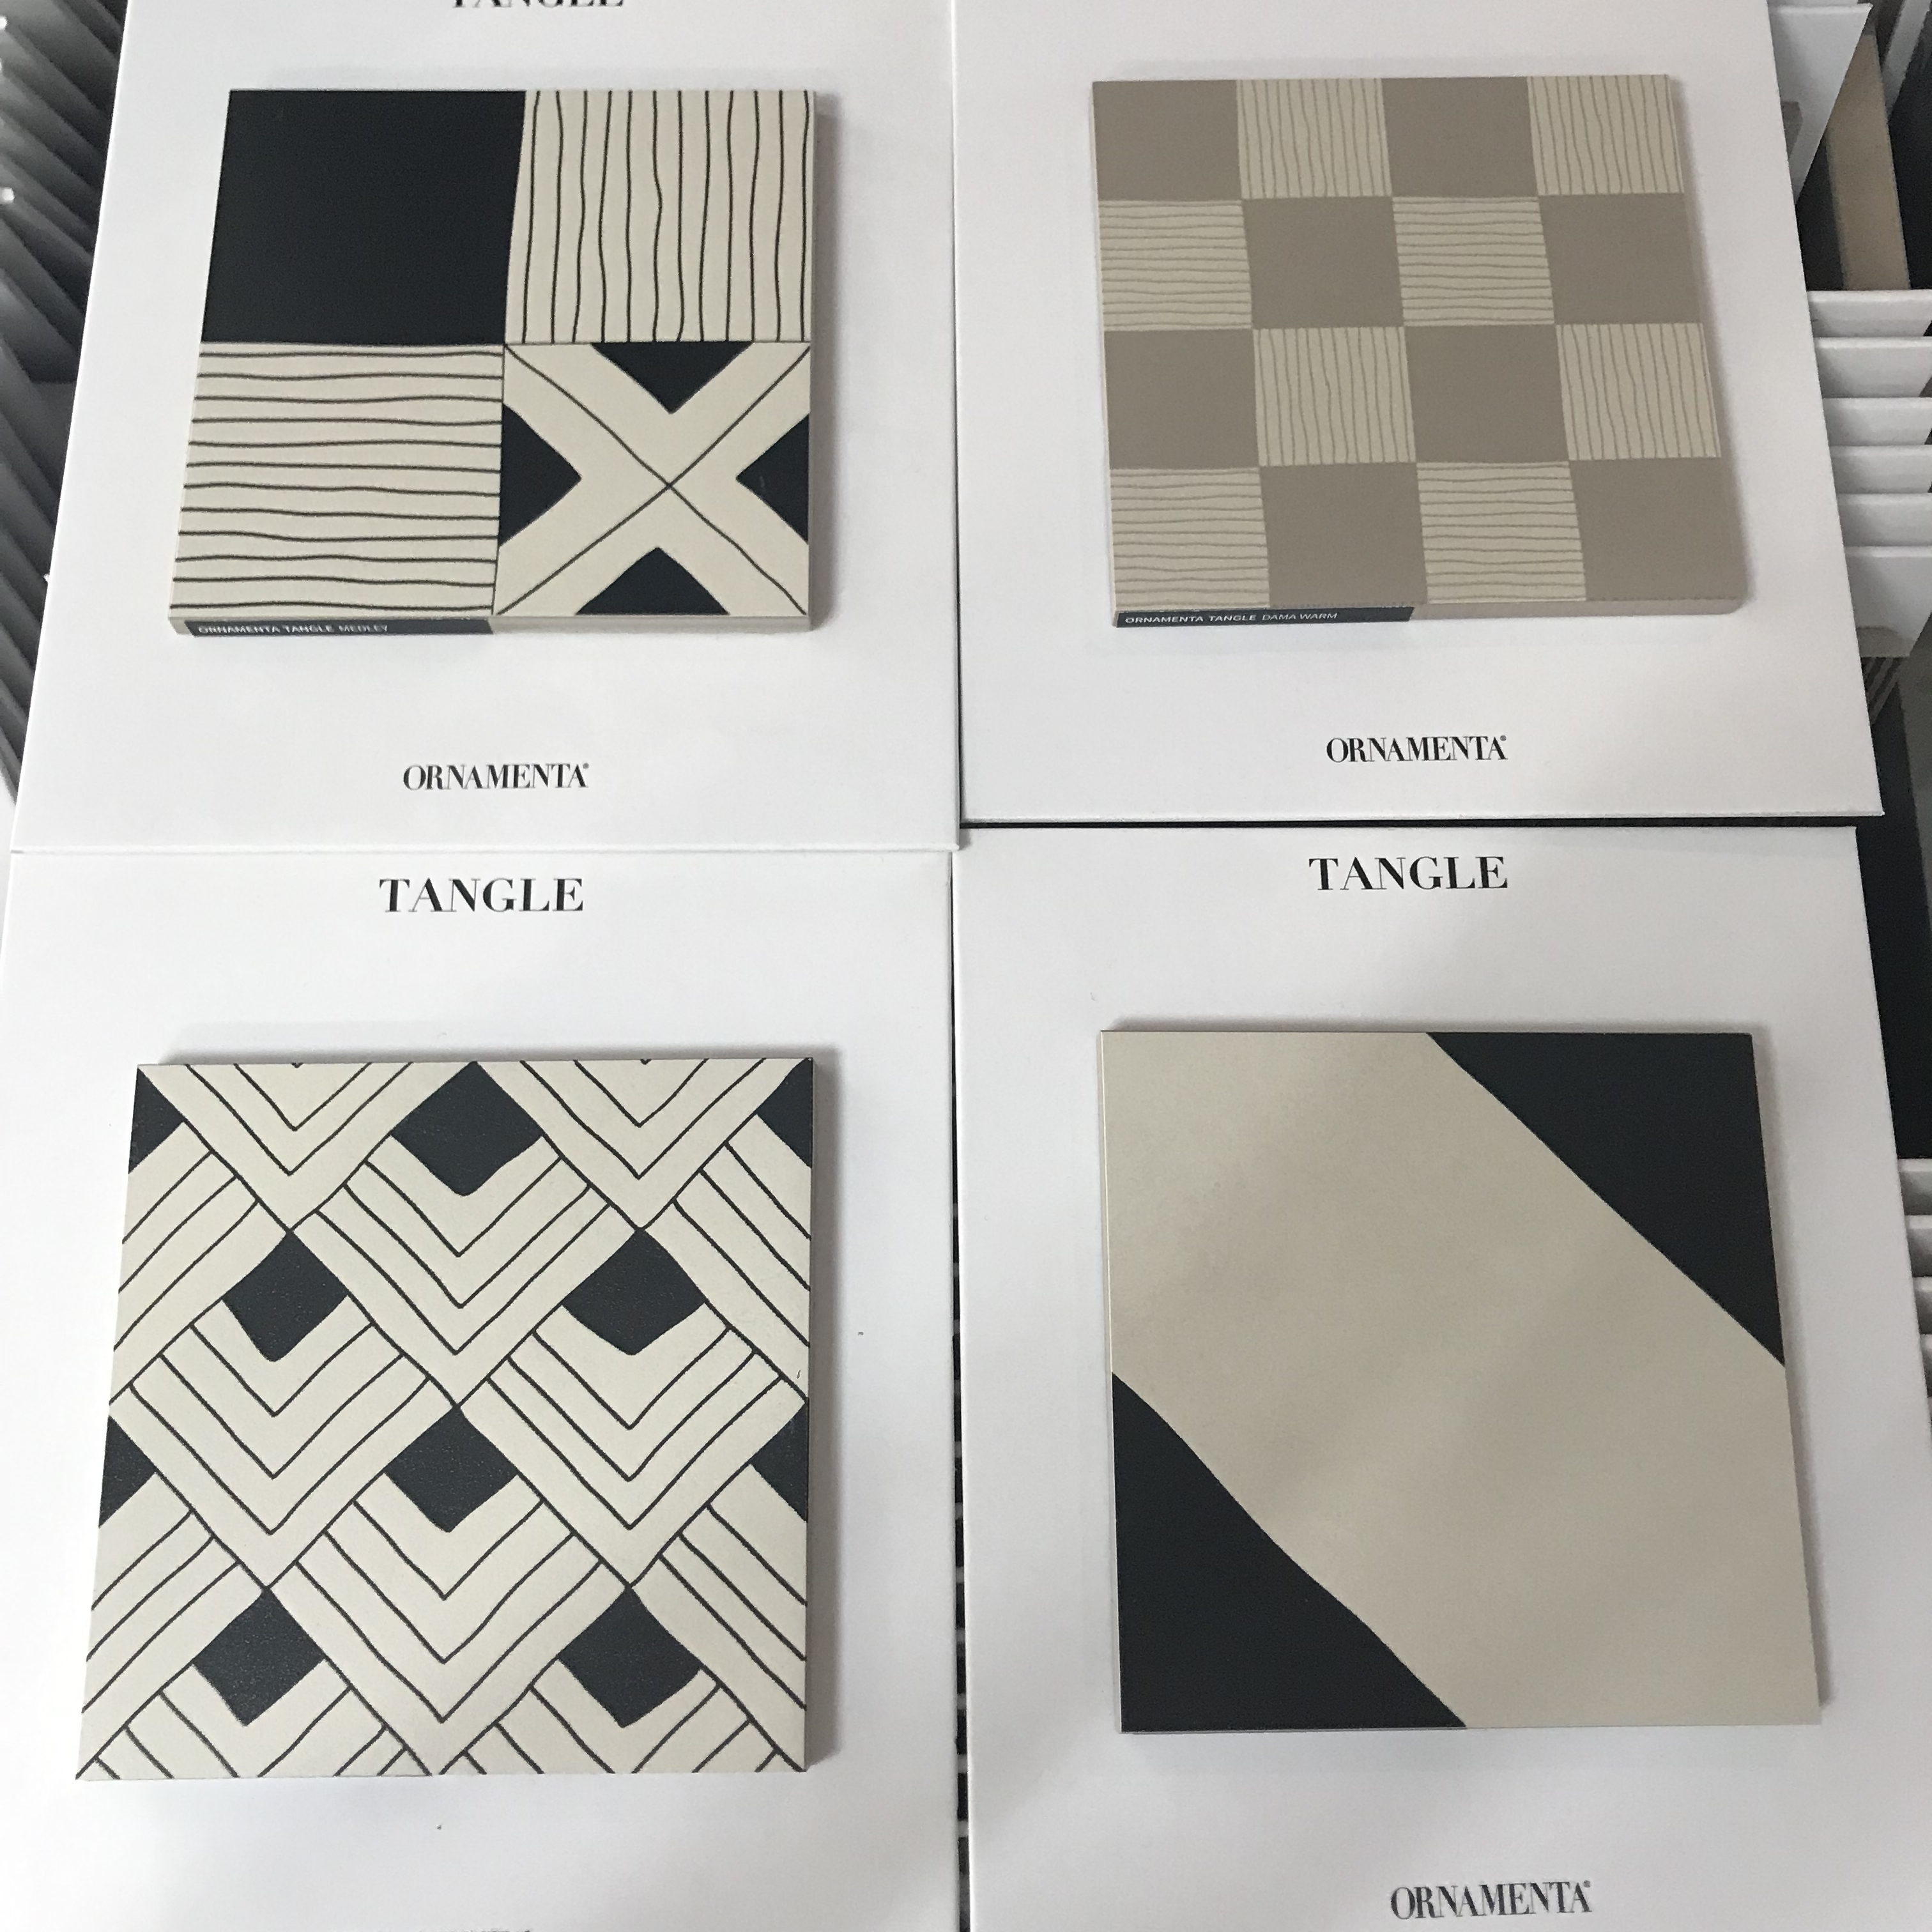 Tuintegels Enter 30s Magazine Picking Out Bathroom Tiles And What Are The 5 Top